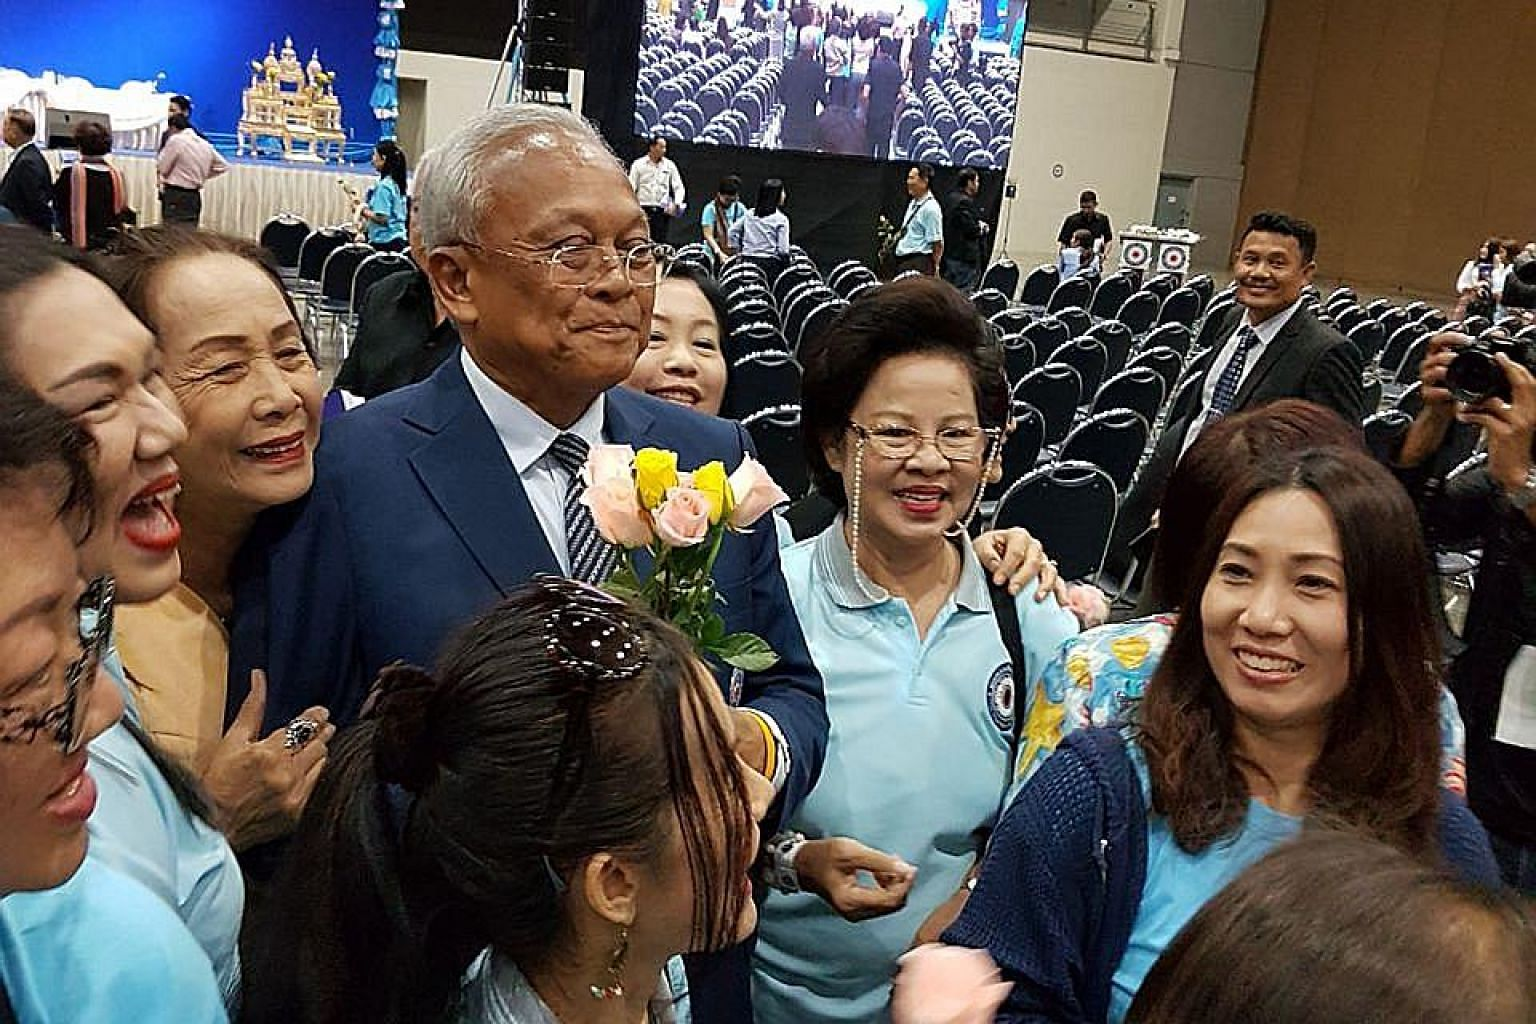 Supporters surrounding former deputy prime minister Suthep Thaugsuban at an intra-party voting centre yesterday. He promised not to rejoin politics after leading the 2014 street protests.